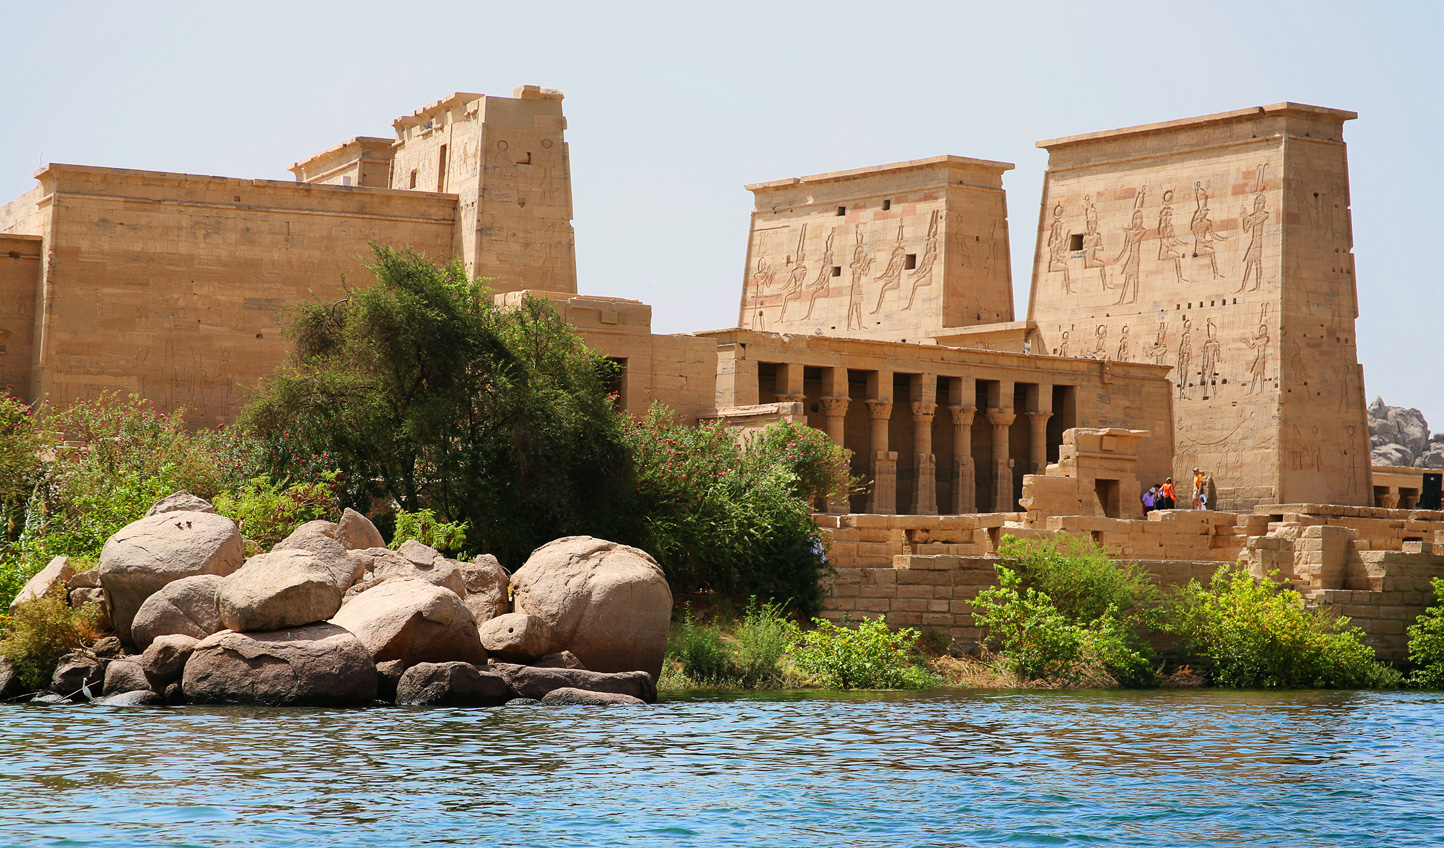 Head down to Aswan and pay a visit to The Pearl of the Nile; the Temple of Philae